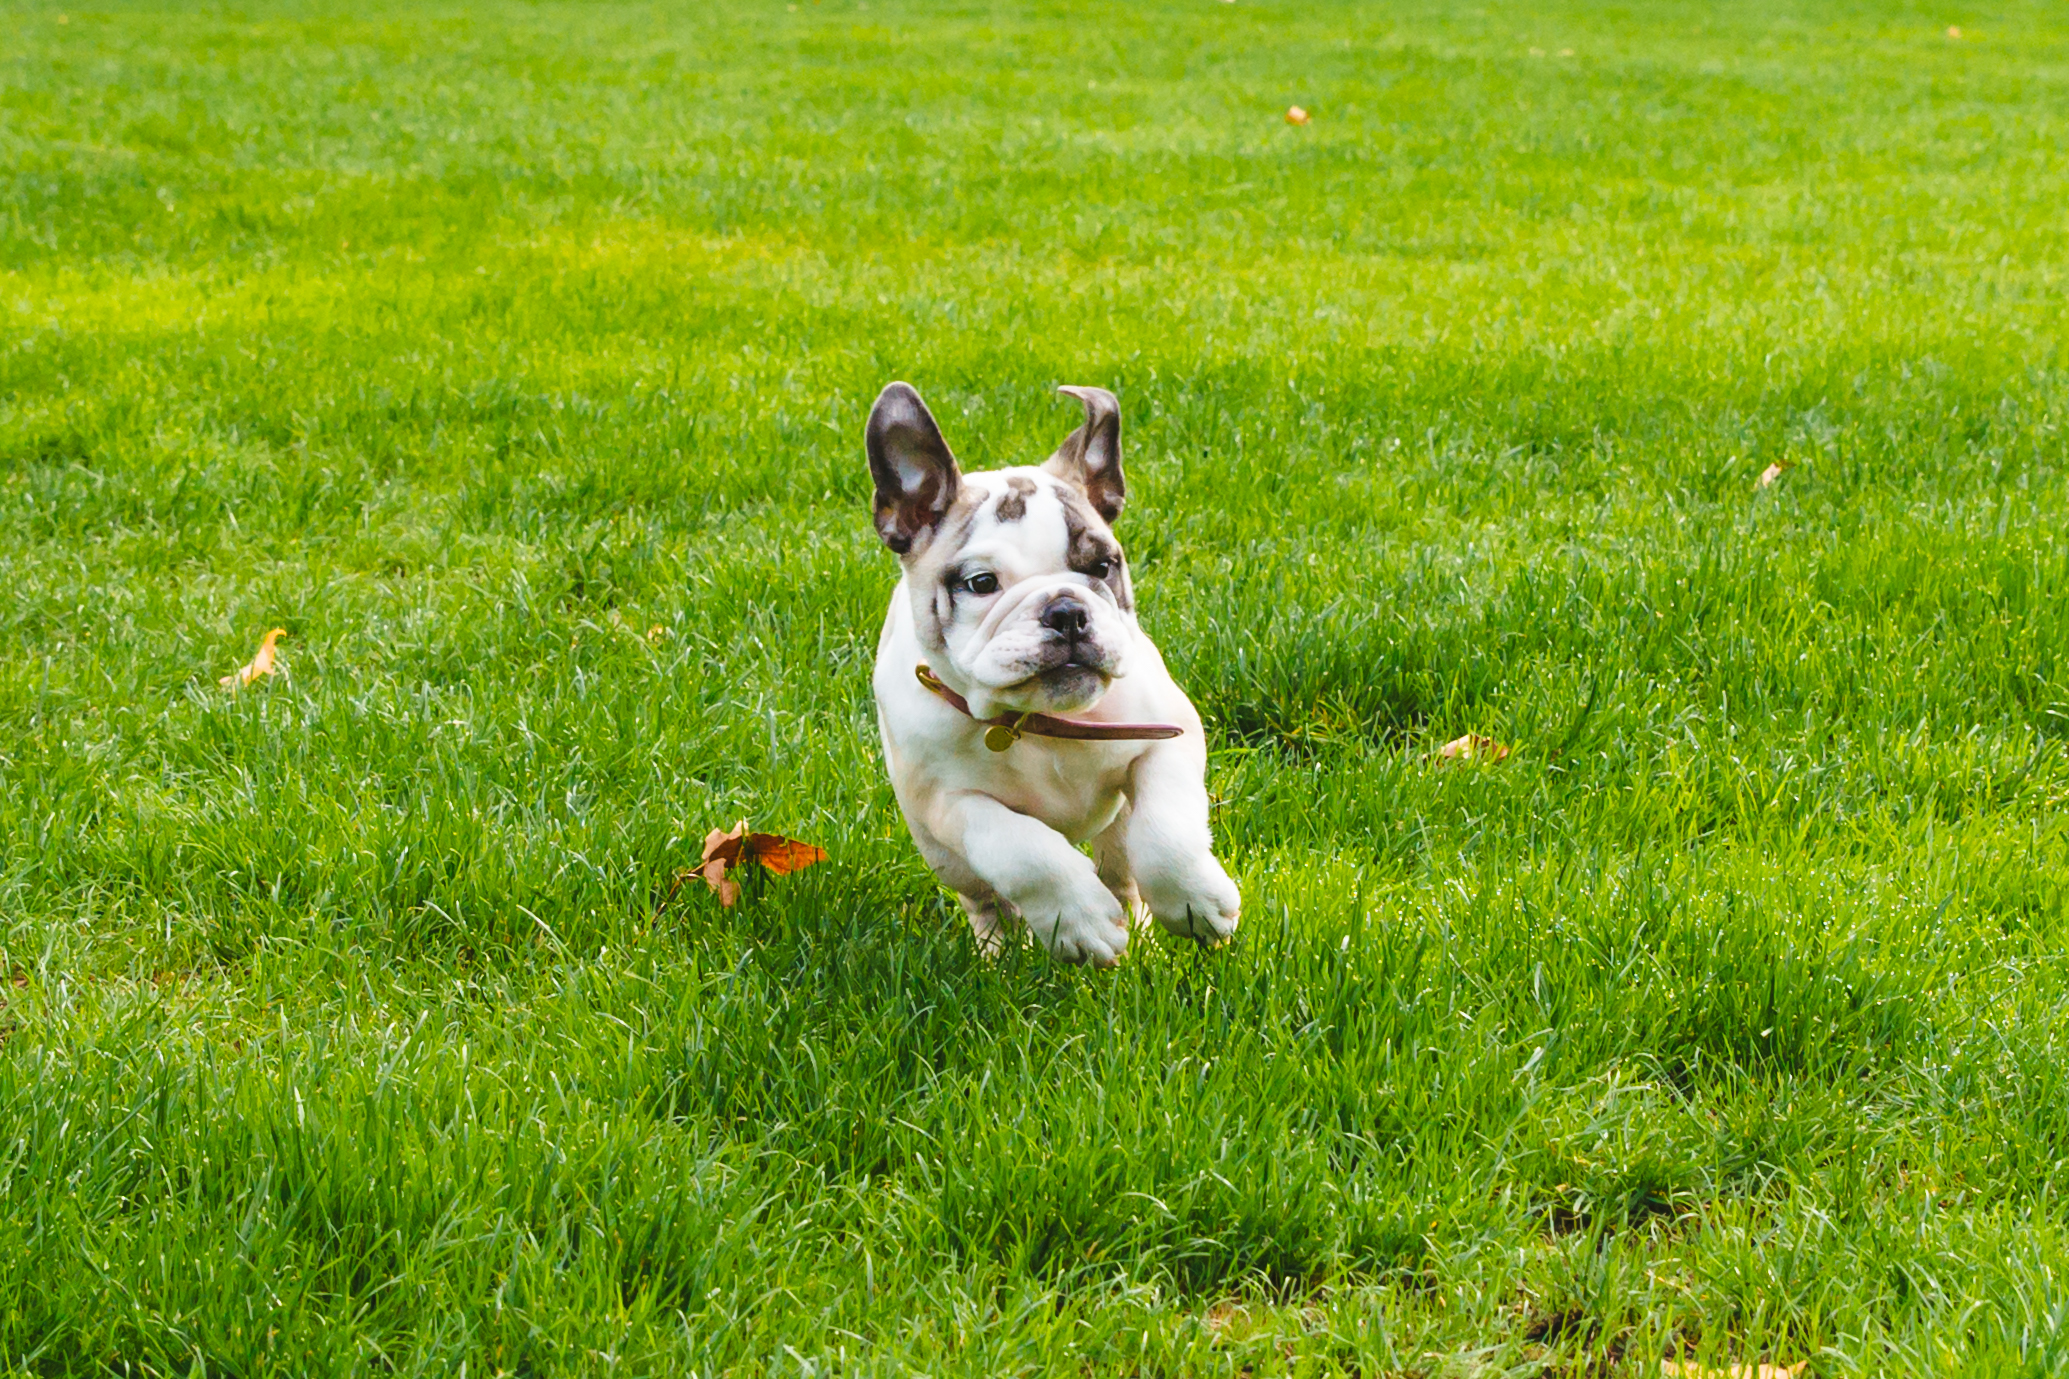 DOTTIE BABY! Oh man, I definitely clicked through this gallery about a hundred times before putting it together because Dottie Lou is the cutest baby boo boo I have ever laid my eyes on. Dottie Lou is 12 week old English Bulldog and was living the Whidbey Island life before settling down in Magnolia. Dottie likes attacking dandelions, apple slices, destroying her pee pads, sleeping on her back with all four legs in the air, stealing her mom's makeup brushes and hiding them in her crate. She dislikes going downstairs, walking in general, and her expensive dog food. The Seattle RUFFined Spotlight is a weekly profile of local pets living and loving life in the PNW. If you or someone you know has a pet you'd like featured, email us at hello@seattlerefined.com or tag #SeattleRUFFined and your furbaby could be the next spotlighted! (Image: Sunita Martini / Seattle Refined).